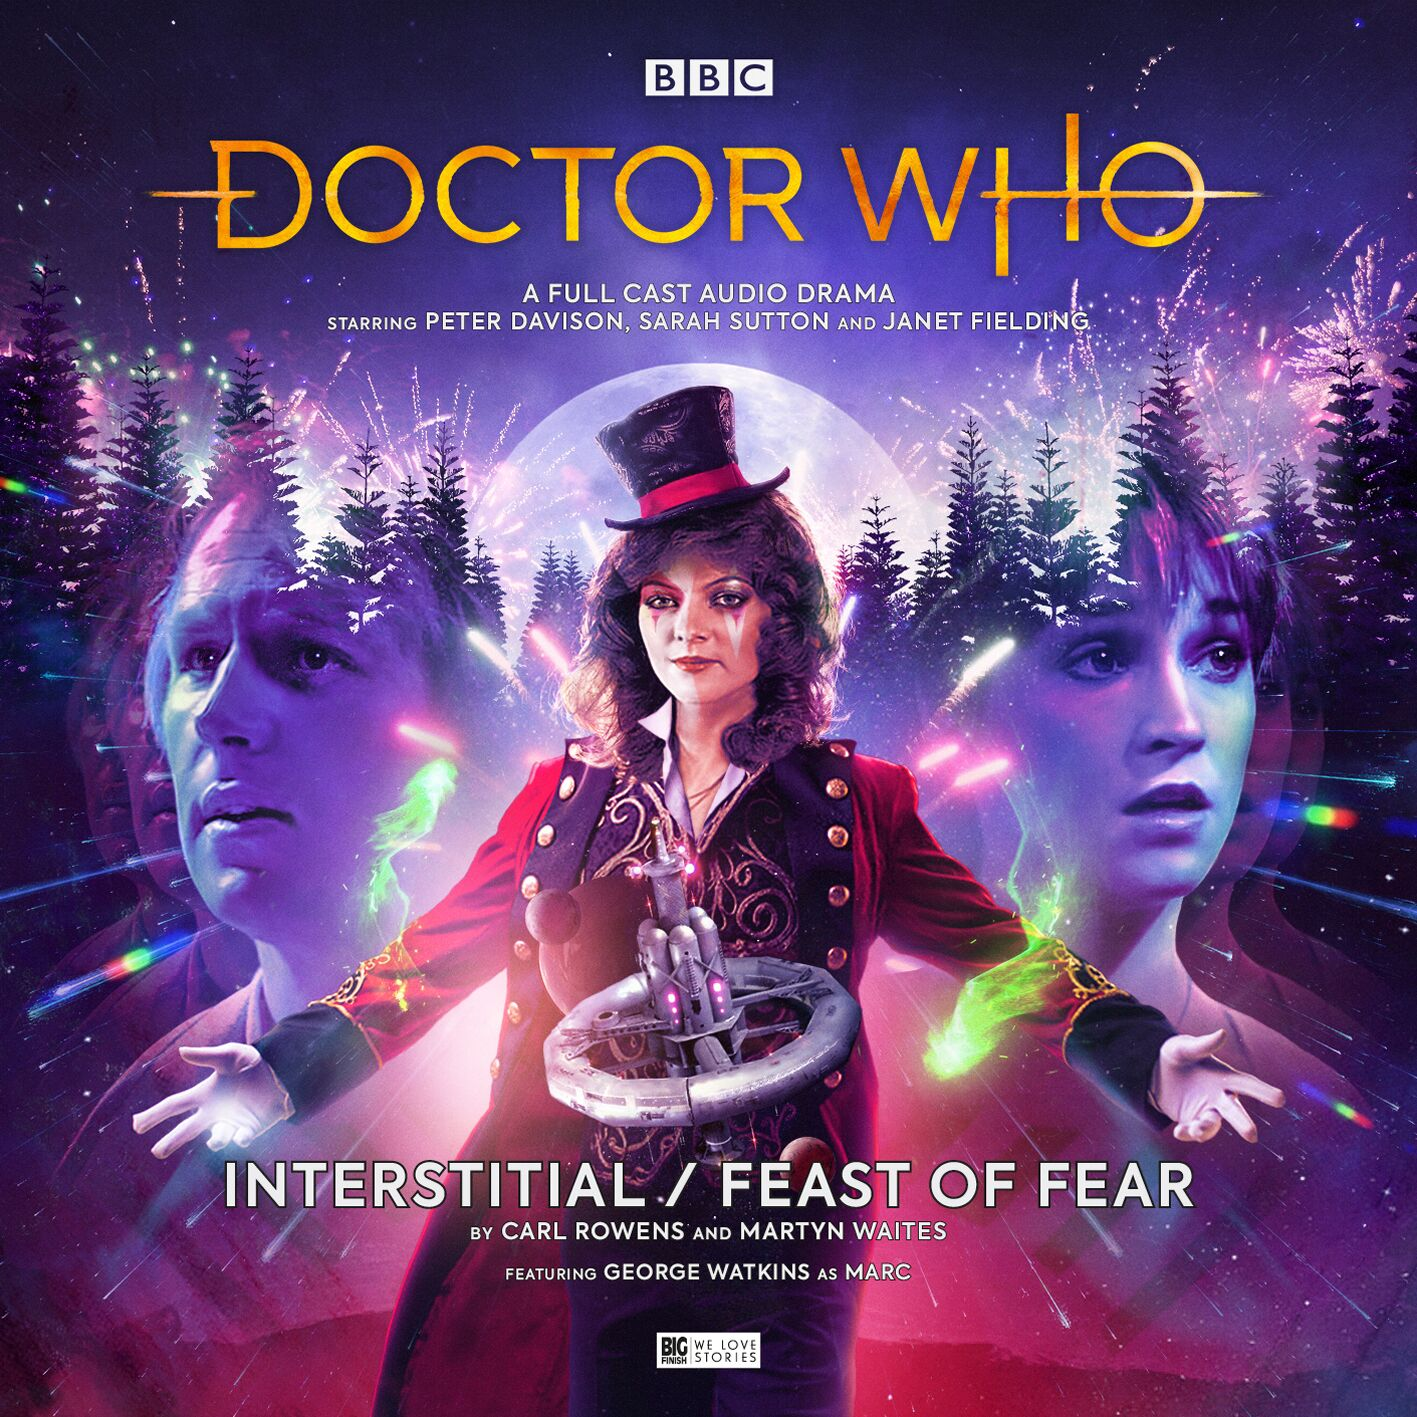 Doctor Who review: Feast of Fear is perfect for the Halloween season